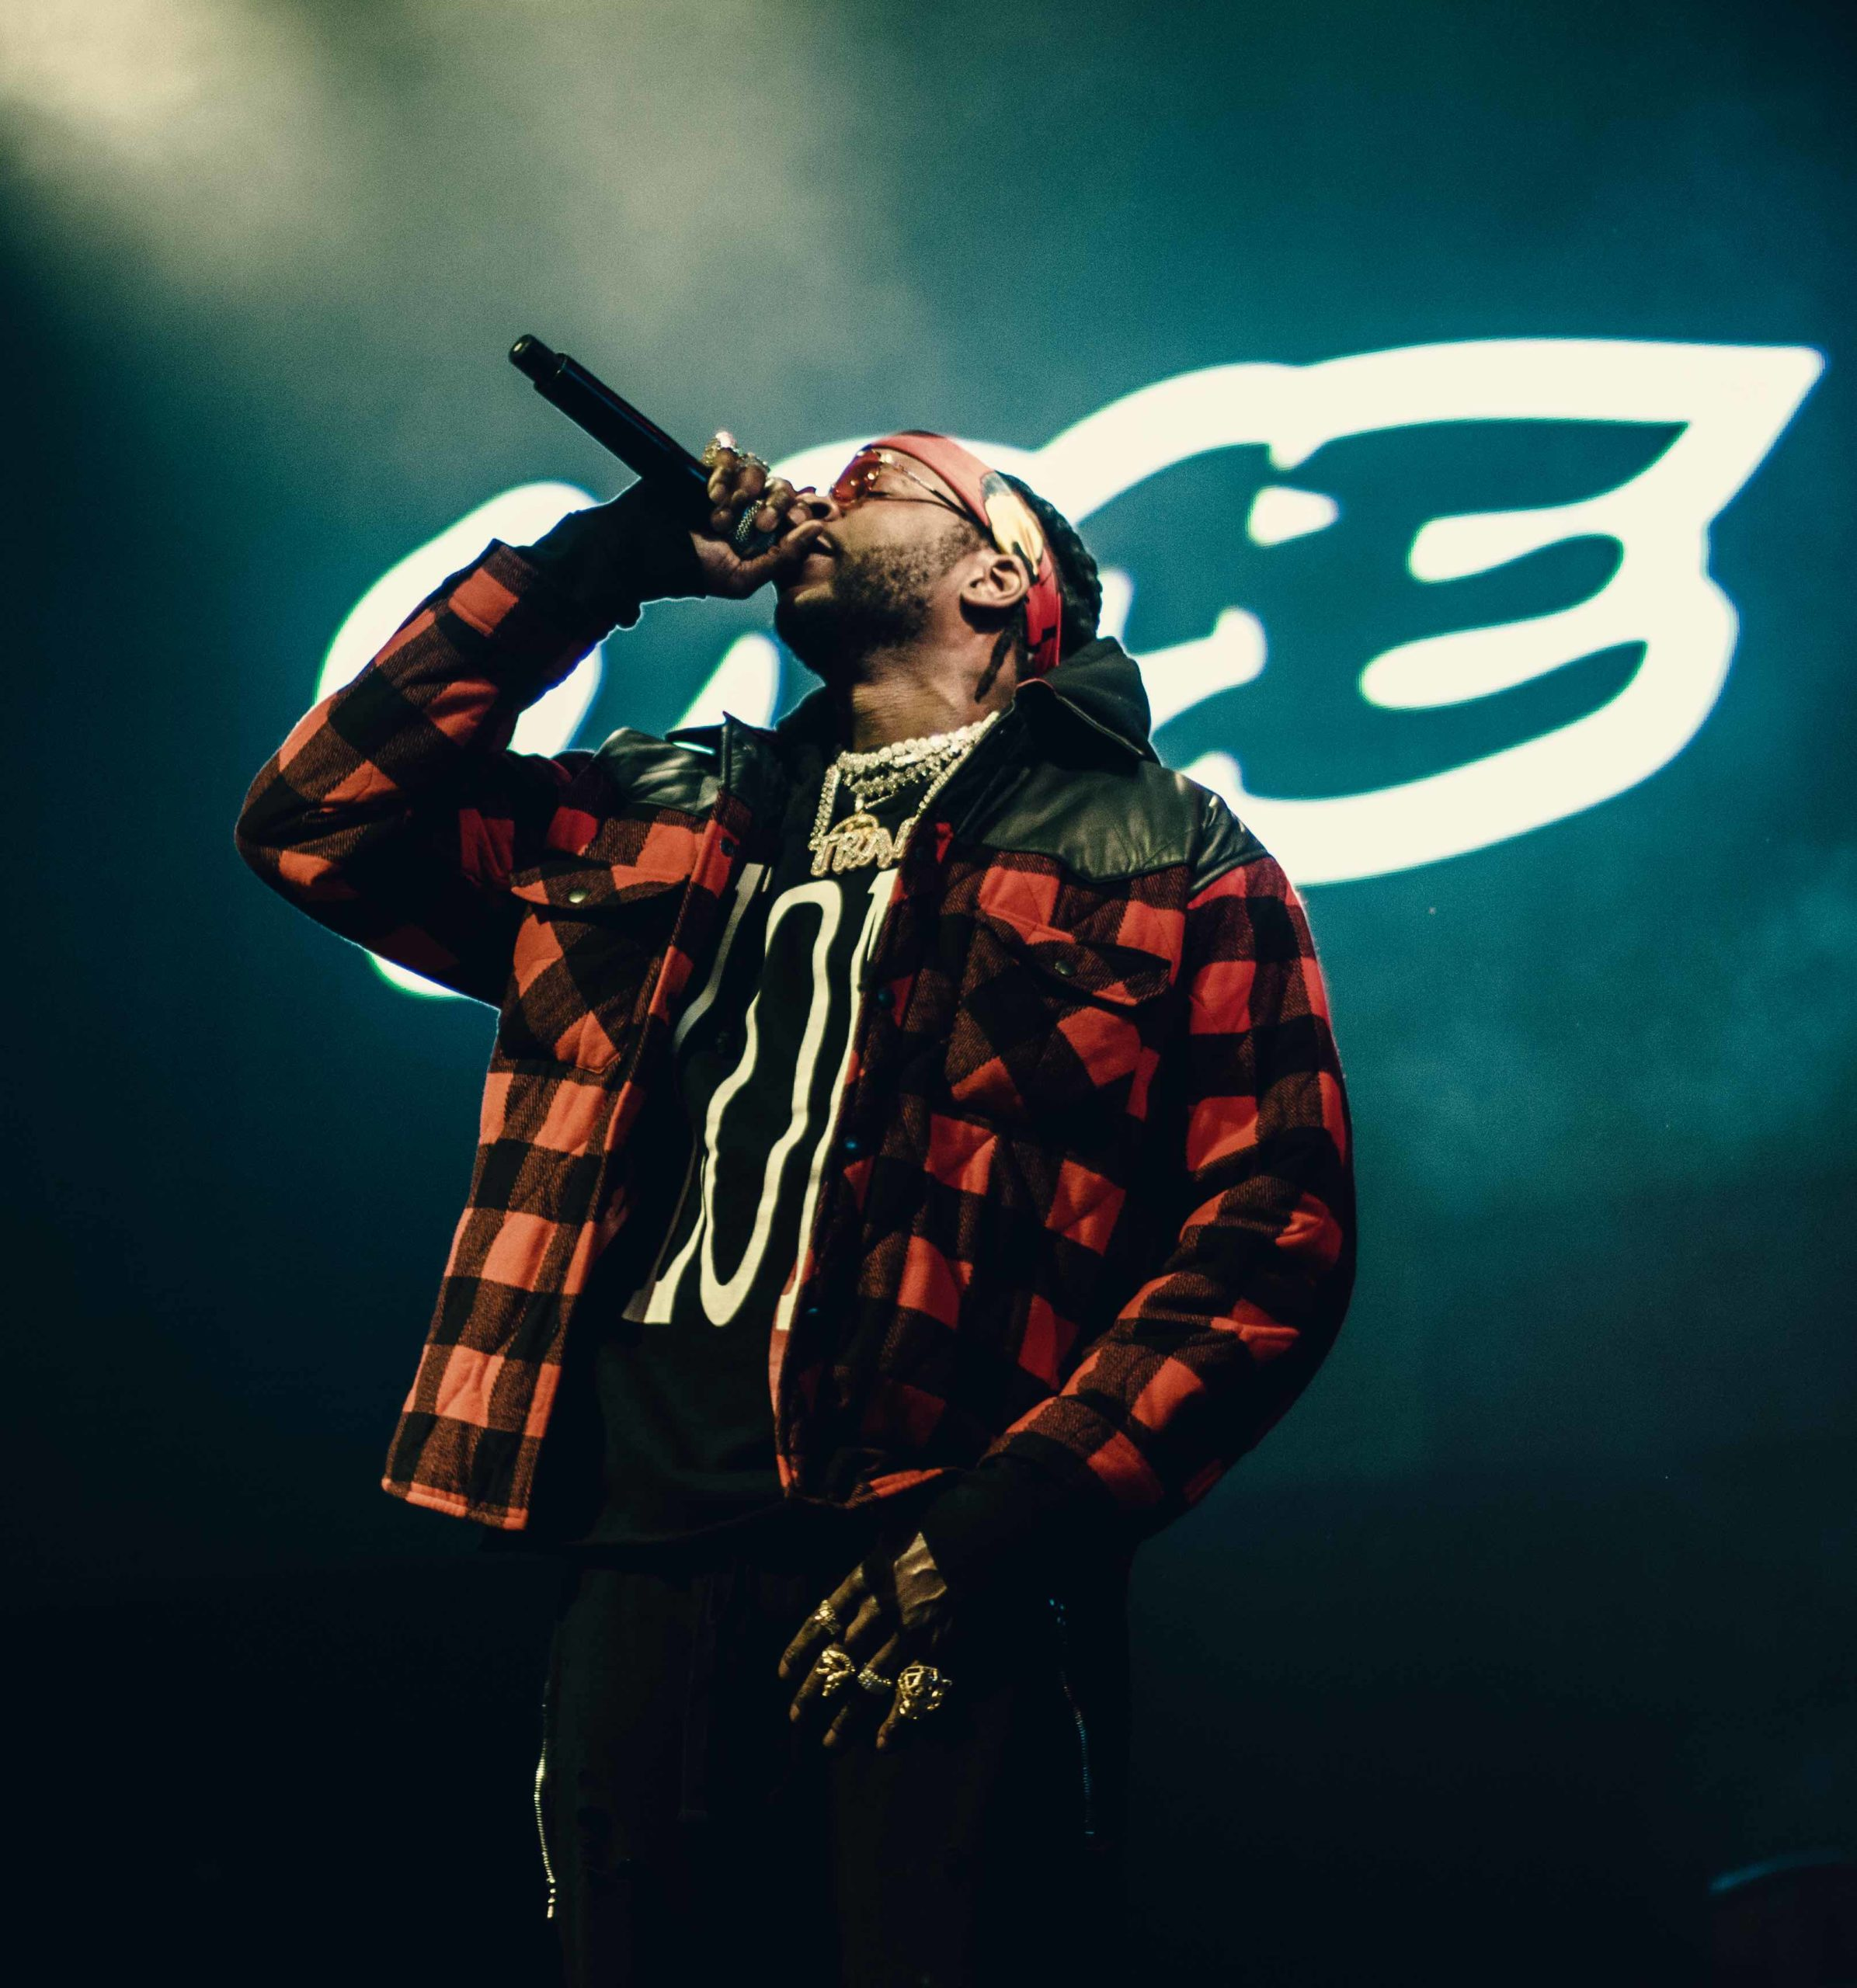 2 Chainz live at Rebel for Canadian Music Week (May 2019)